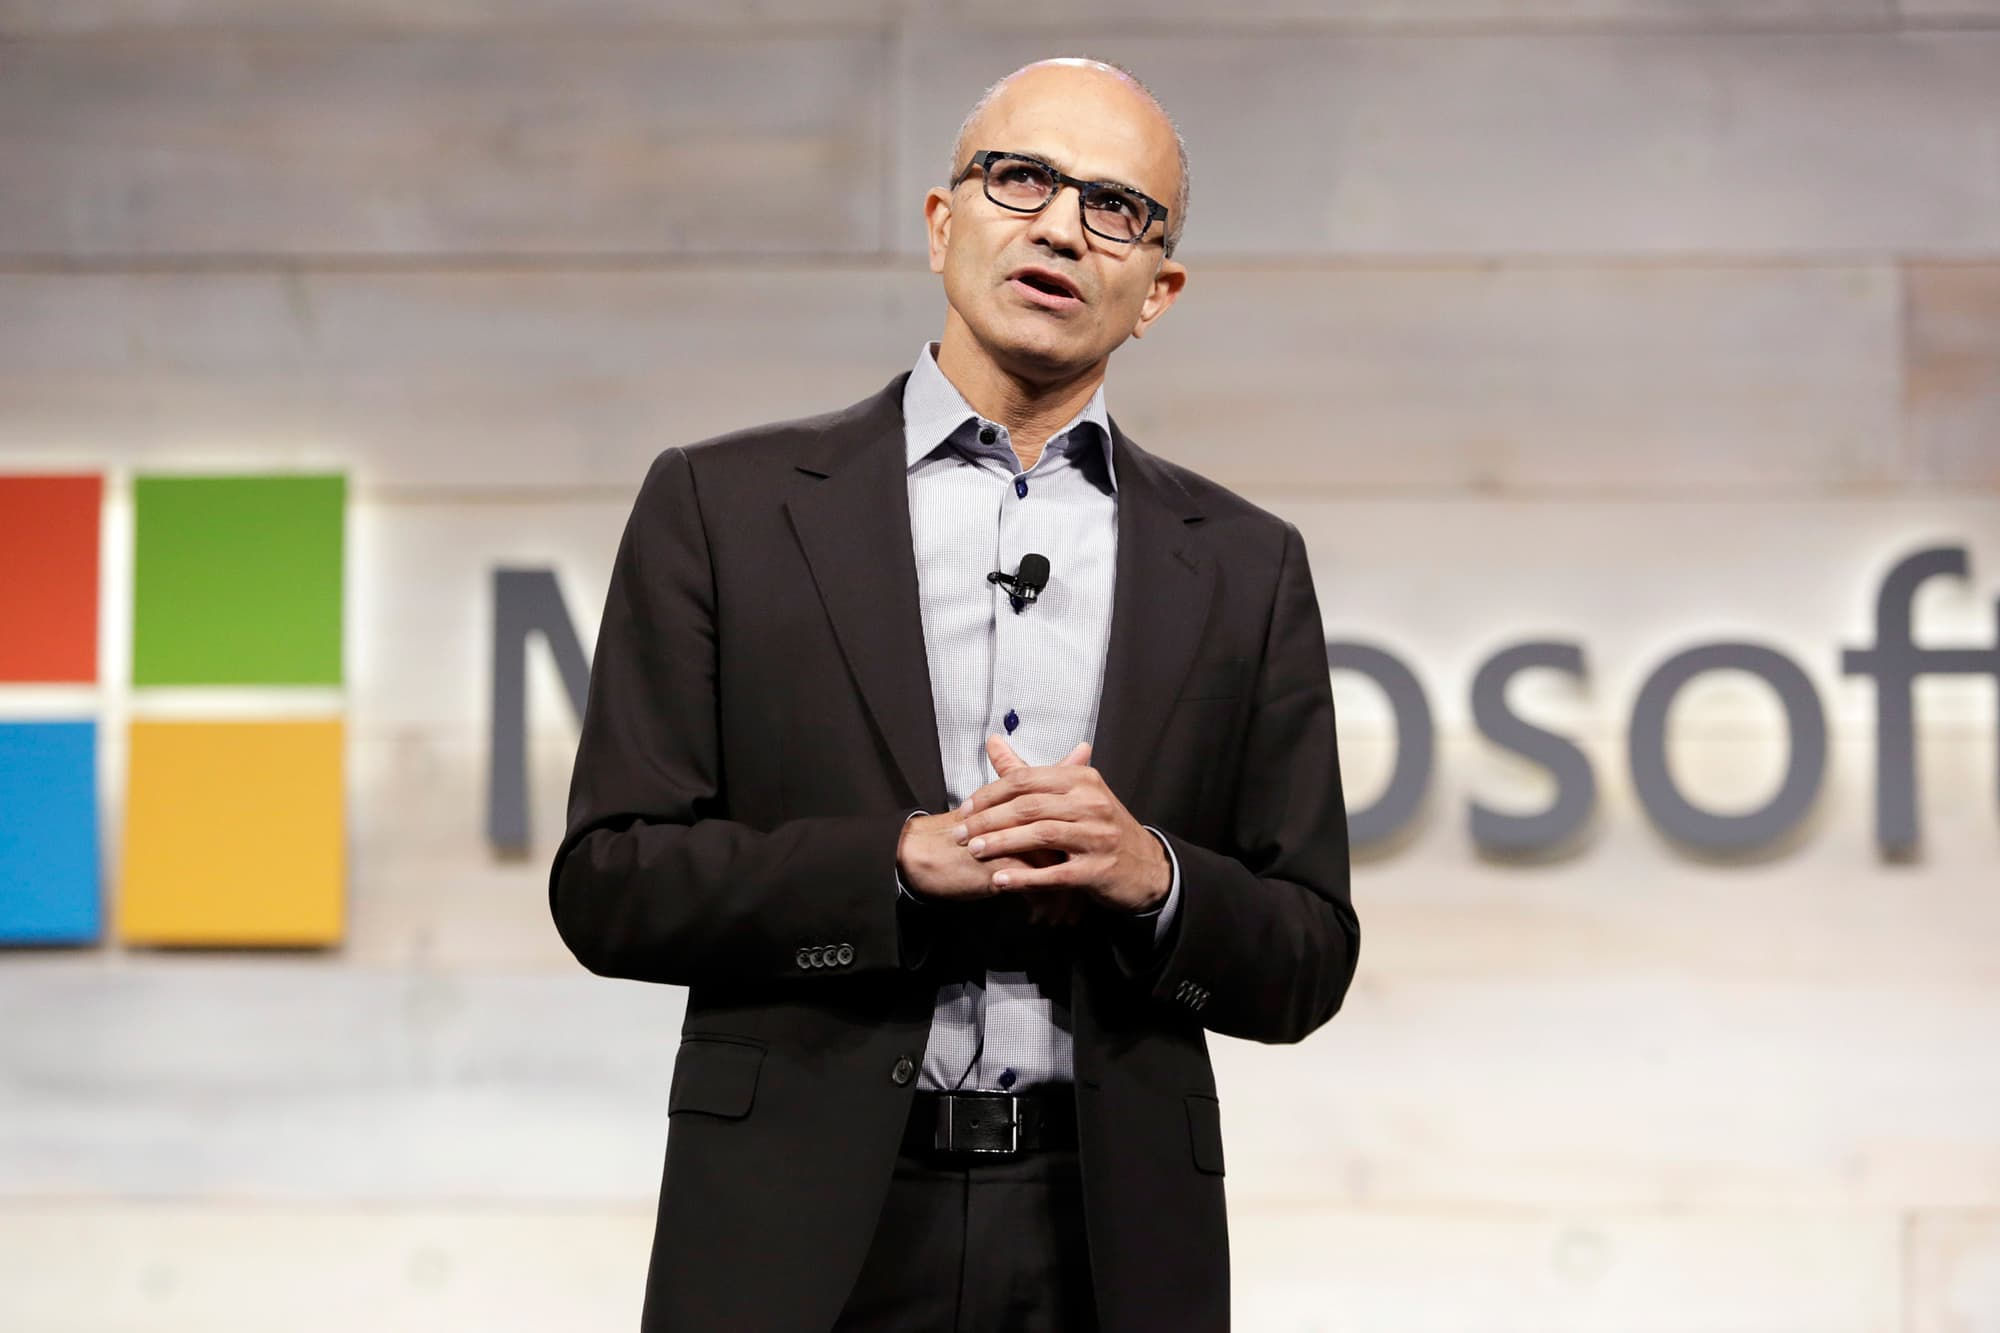 Apple and Microsoft vie for top market spot, but only one will win